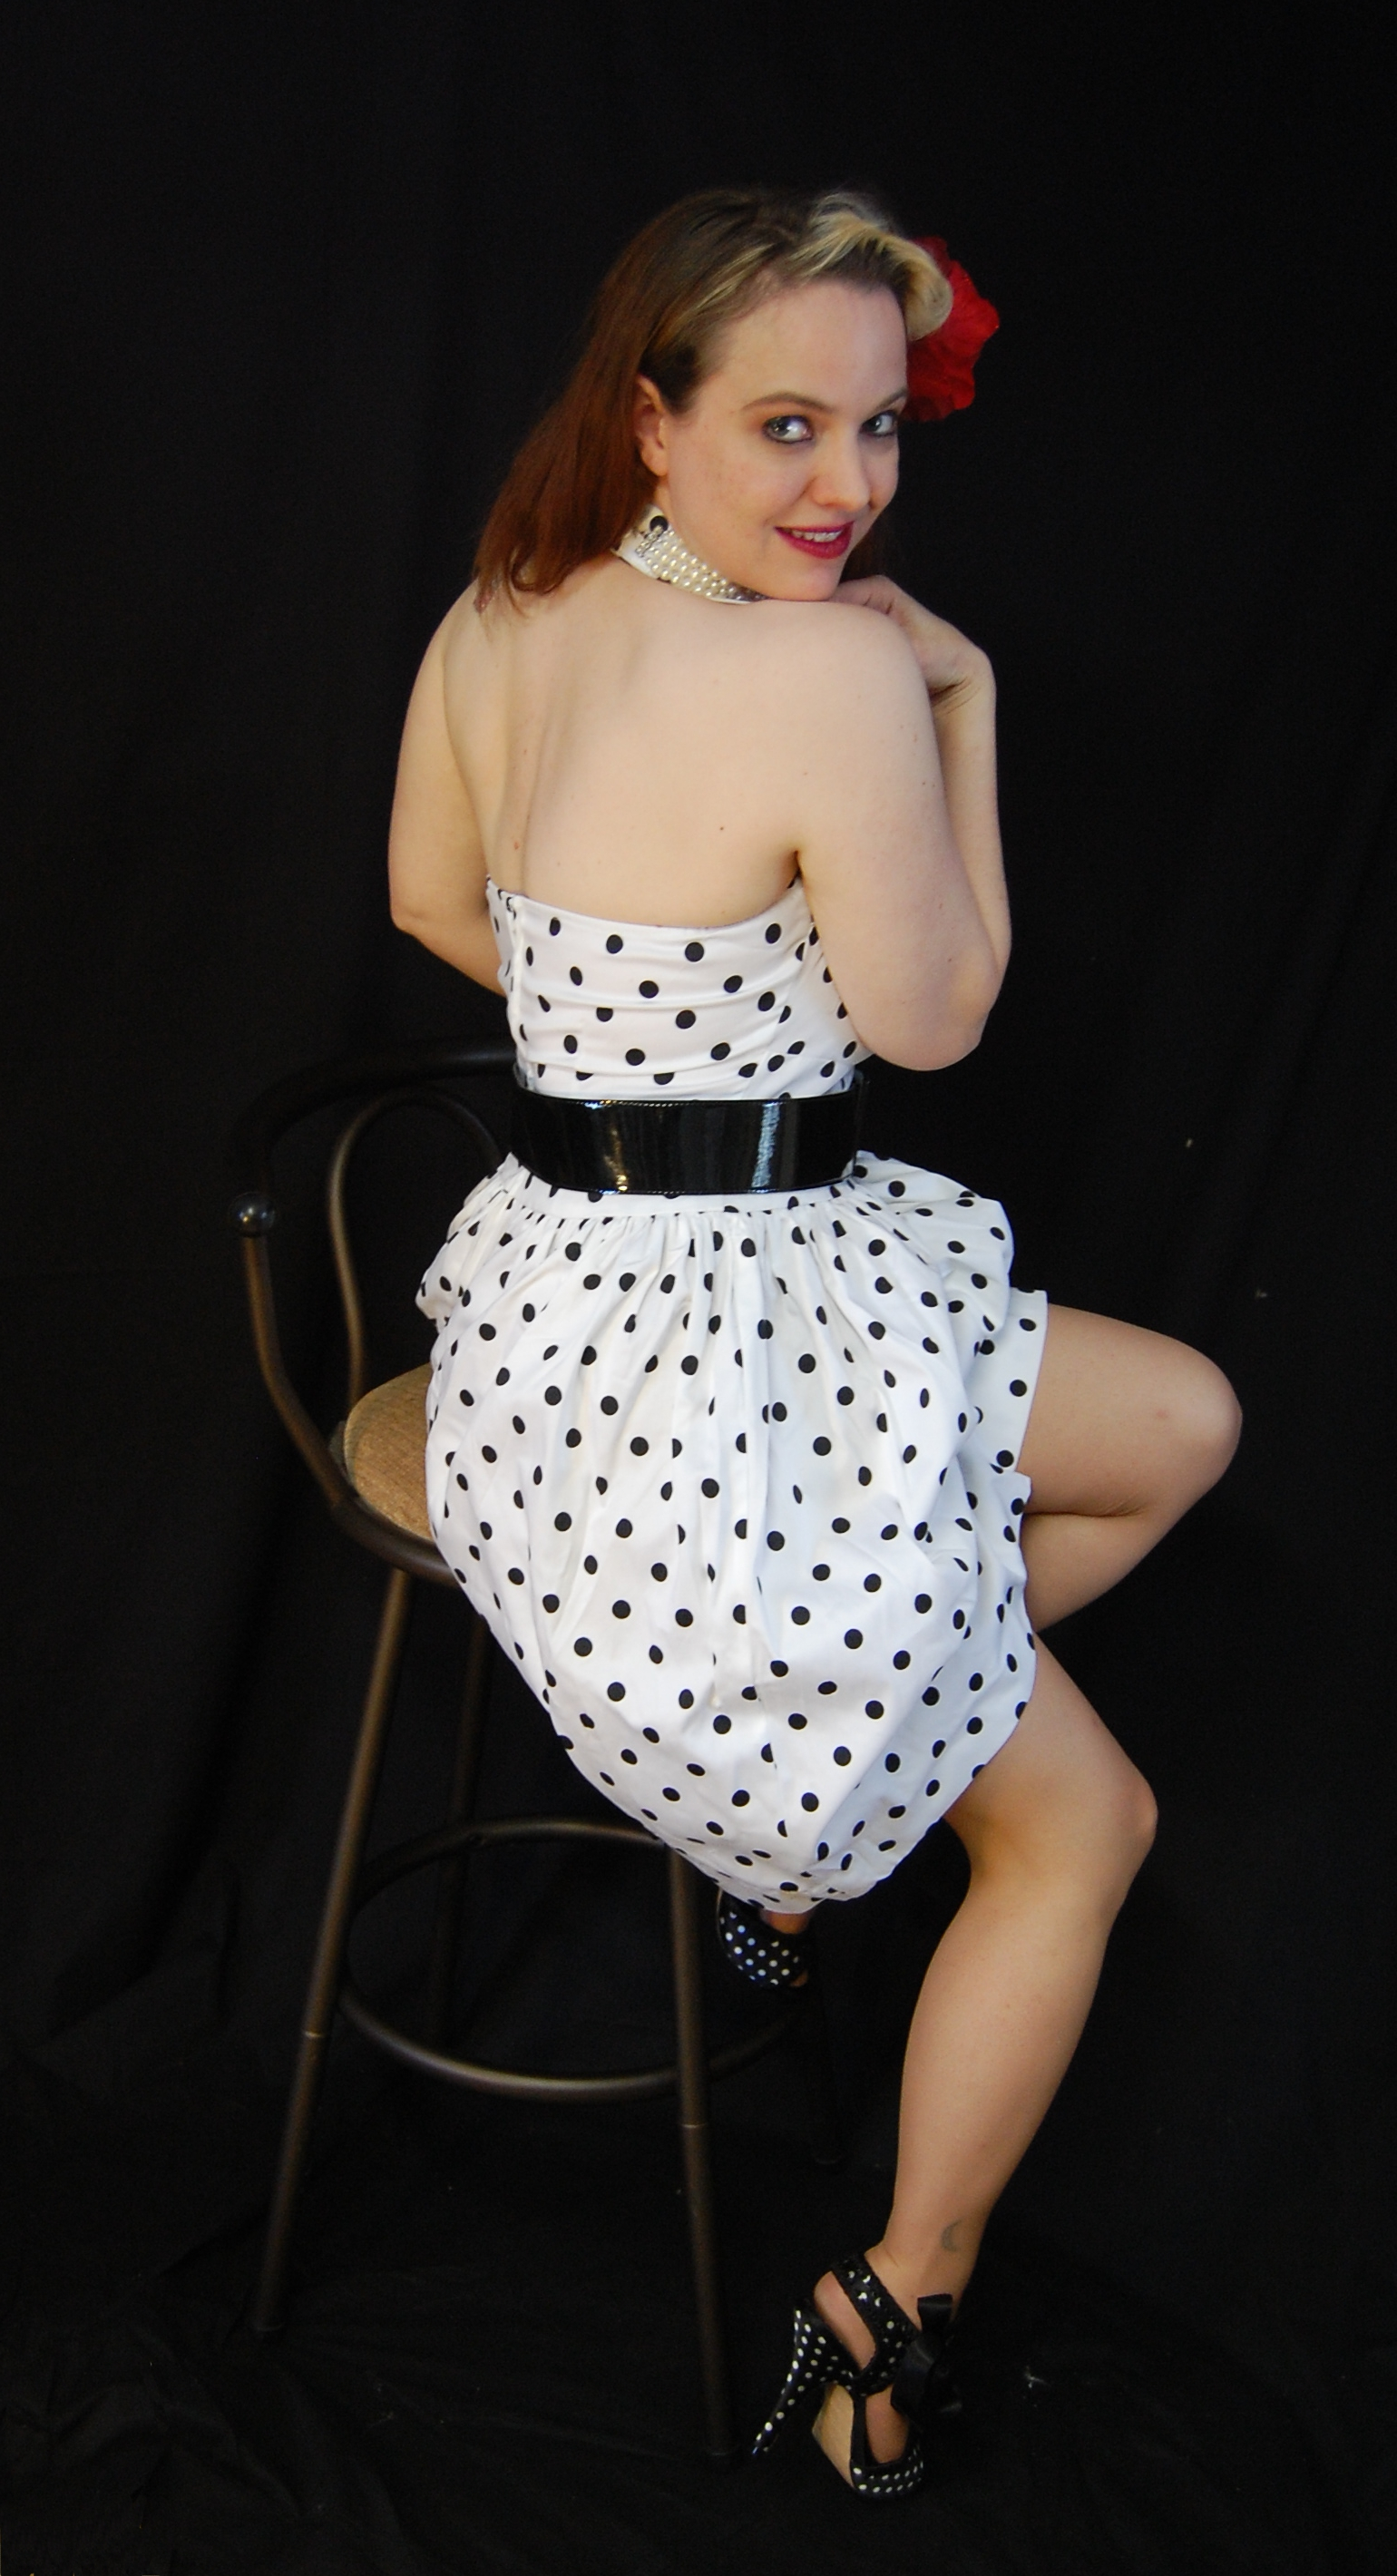 2010 Fife pinup white dress 0223